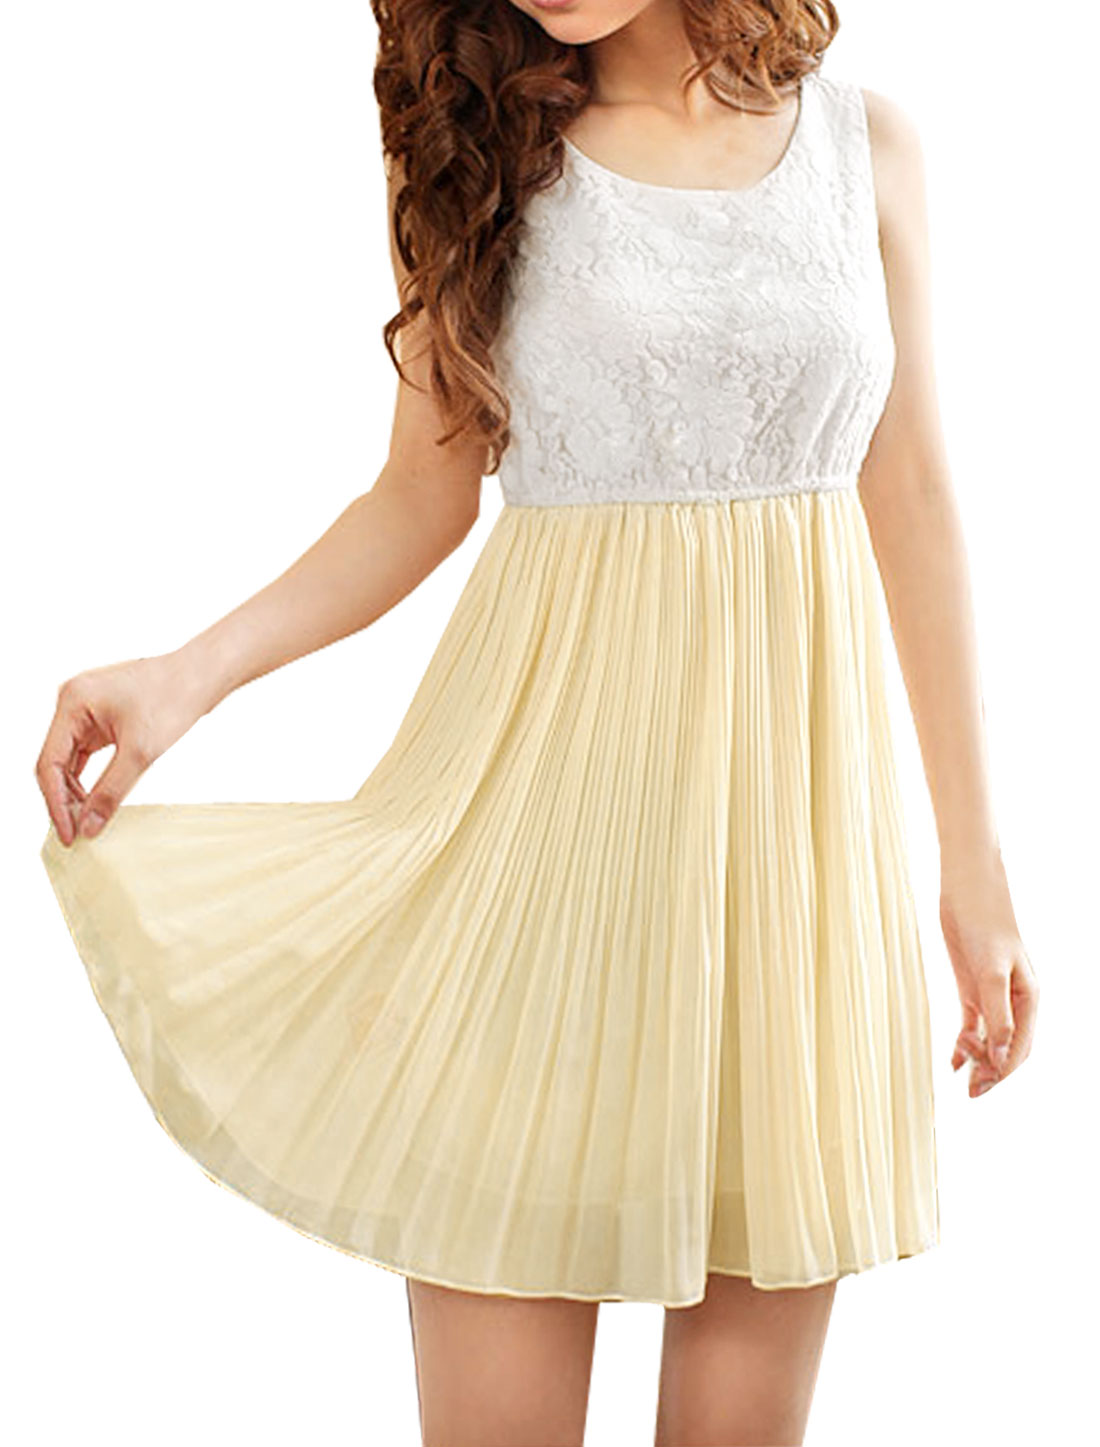 Woman NEW Lace Splice Upper Elastic Waist Beige White A-Line Dress XL